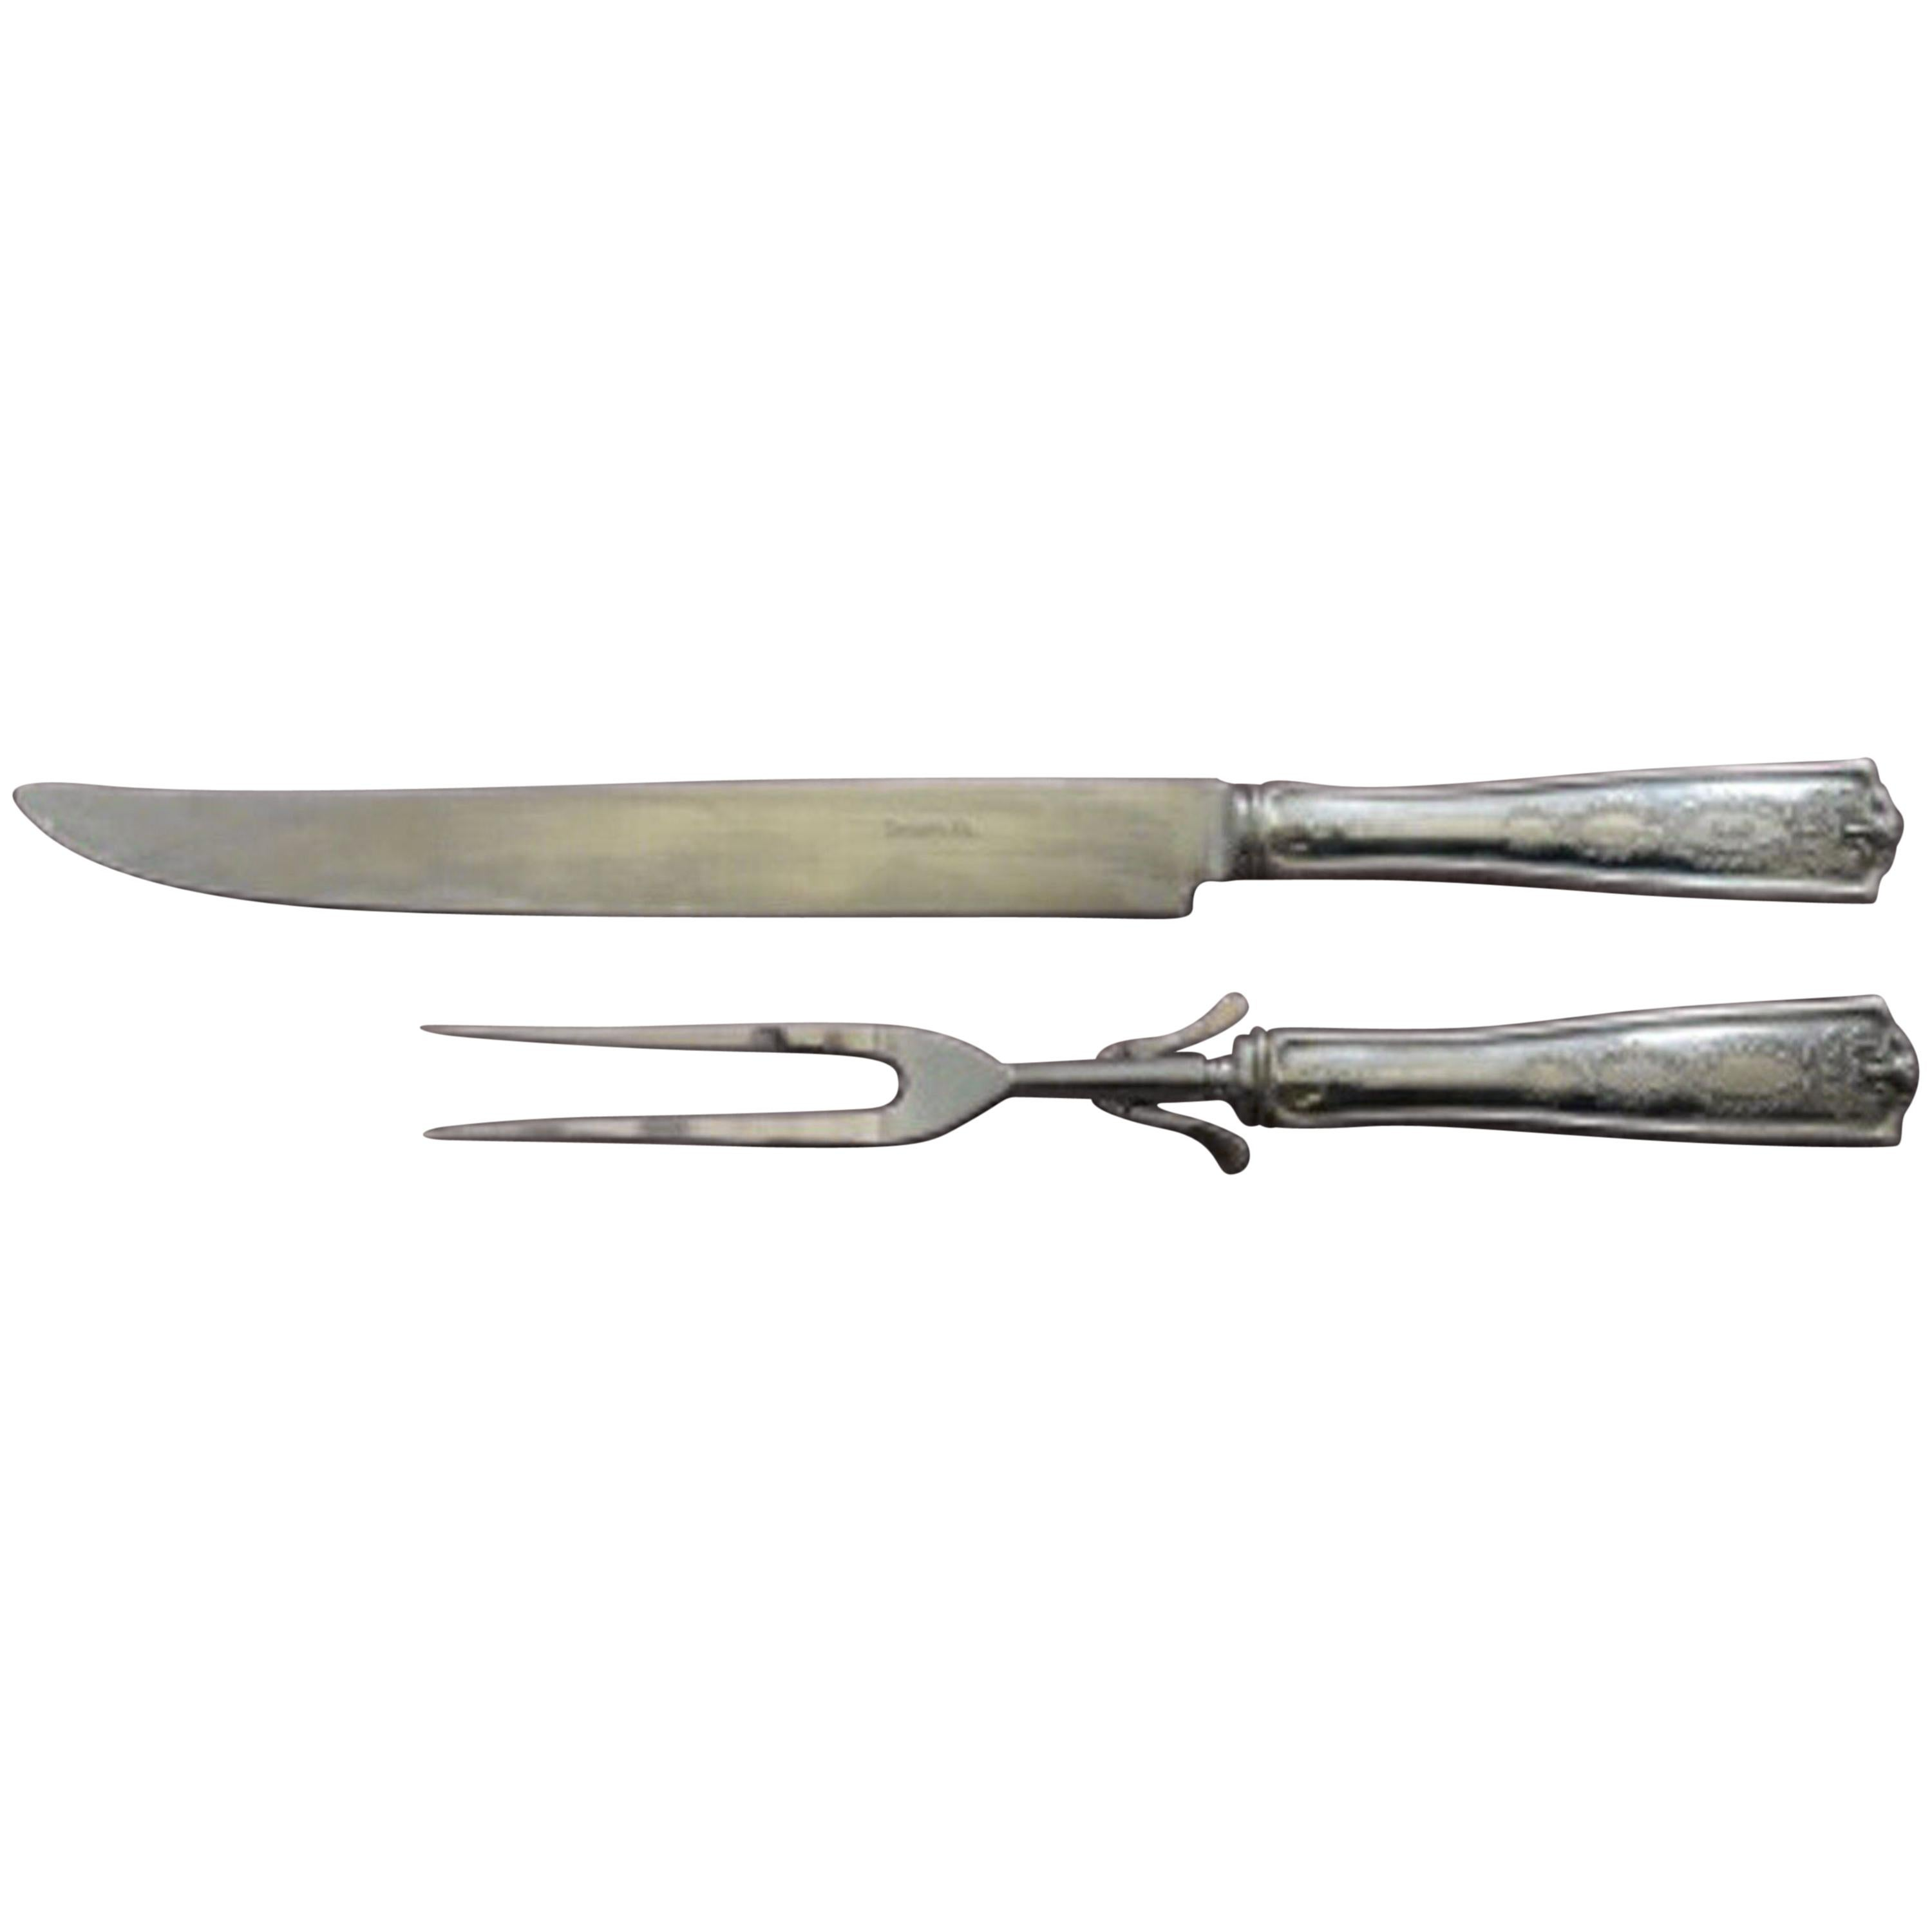 Winthrop by Tiffany & Co. Sterling Silver Roast Carving Set 2-Pc HH WS Antique